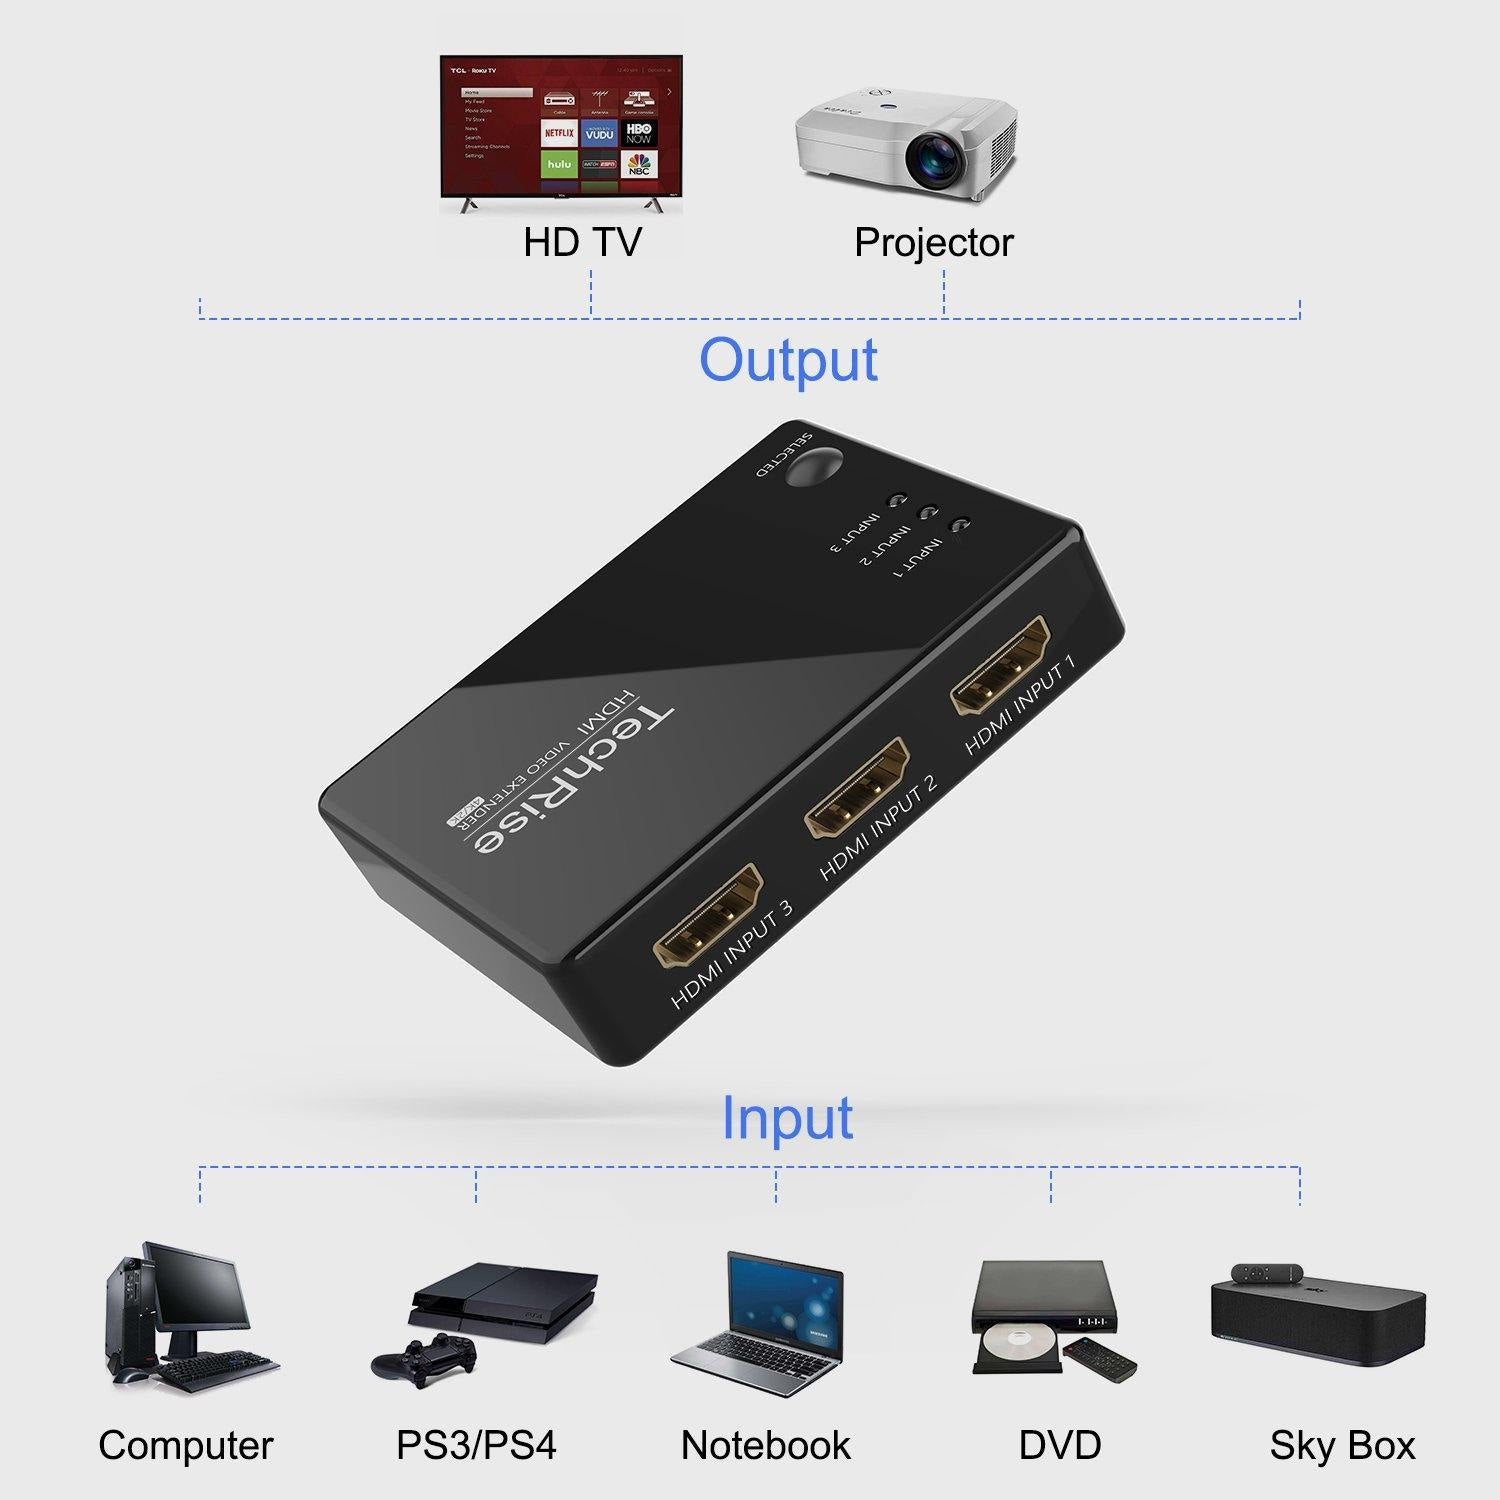 HDMI Switch 4K, TechRise 3-Port HDMI Splitter with Remote Control, HDMI Video HD Converter Adapter, 4K@60Hz HDMI Switcher Hub Supports 4K 3D 1080P for PS3 PS4, Xbox 360, HD-DVD, SKY-STB, Plug & Play